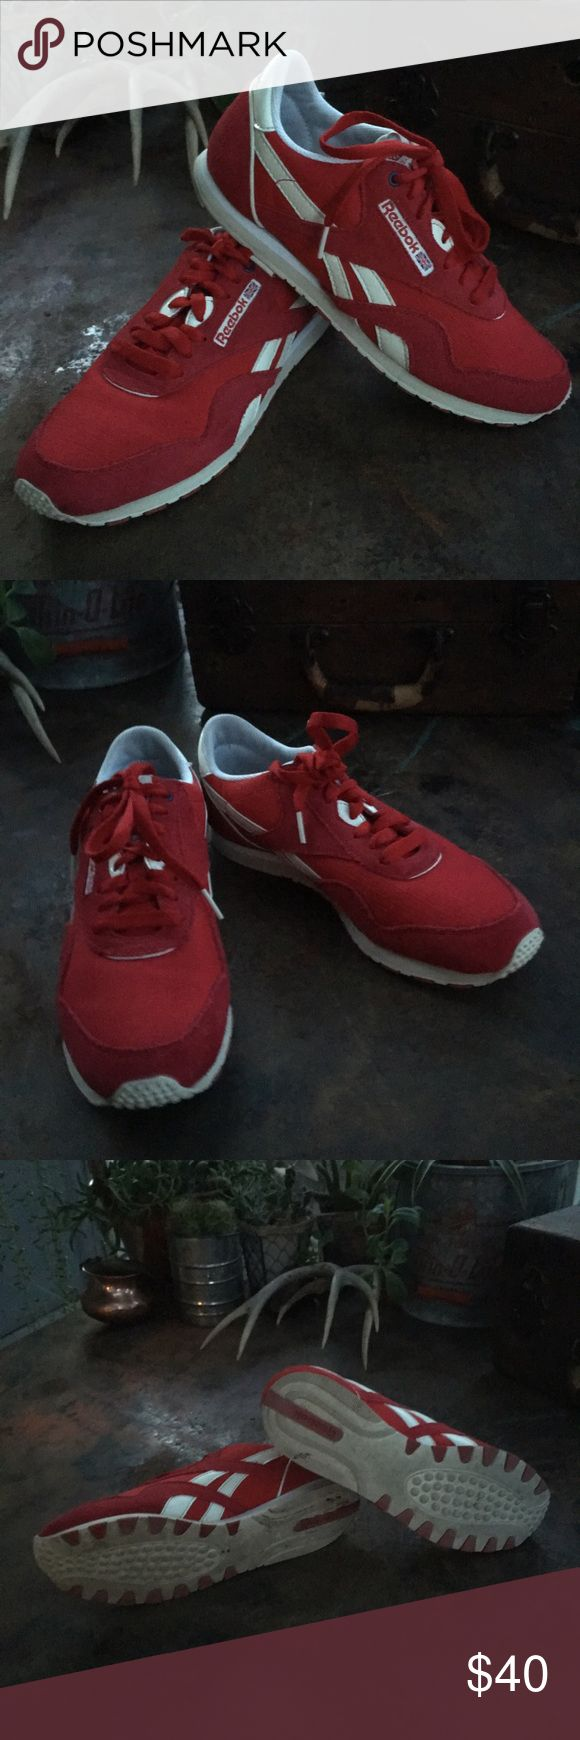 Reebok classic sneakers Fantastic red& white Reebok classic sneakers in great condition Reebok Shoes Sneakers